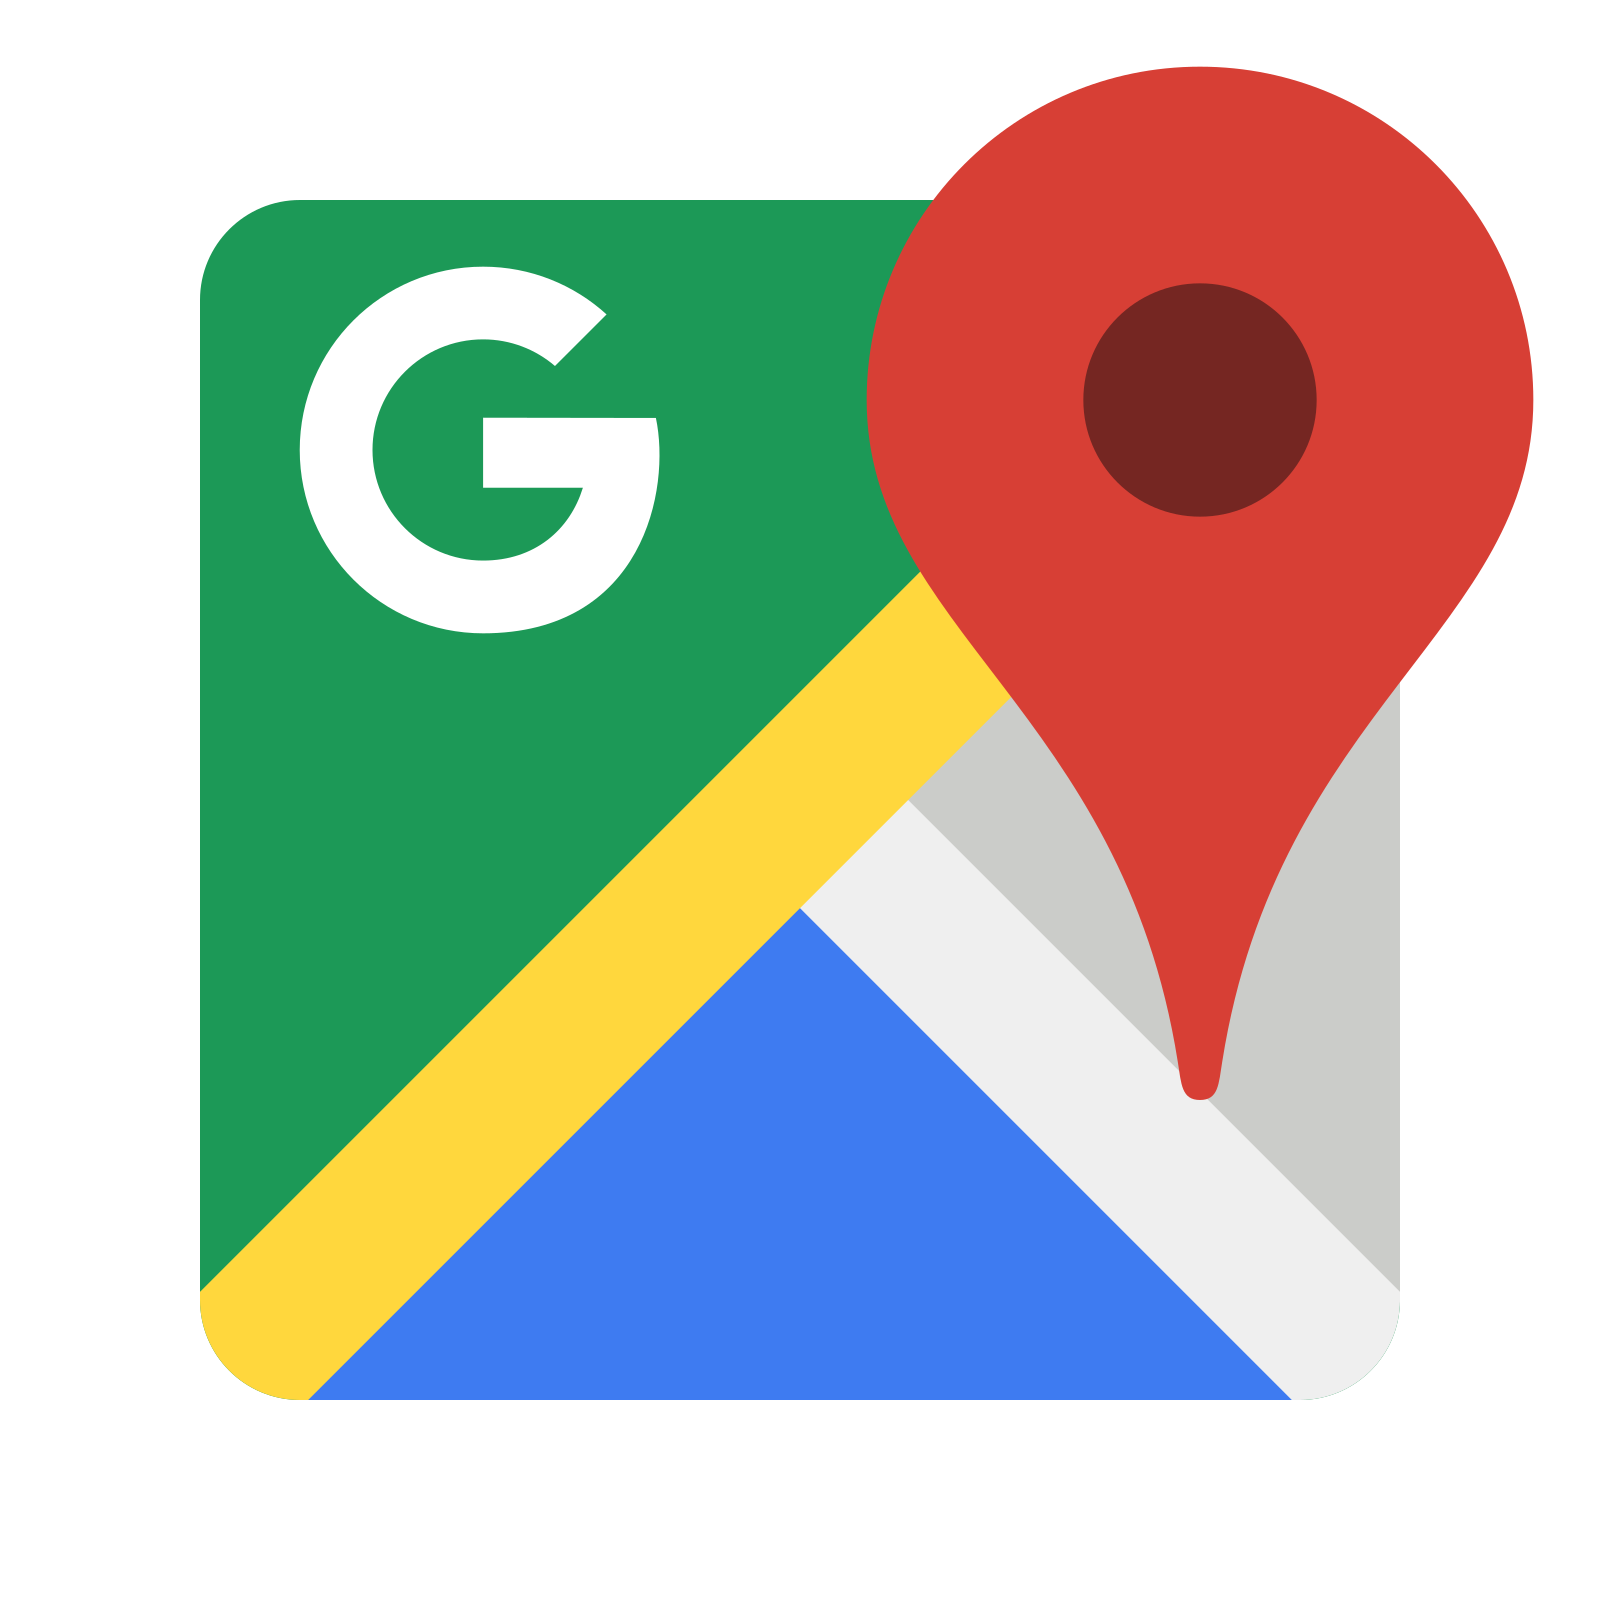 Free download and vector. Google maps icon png